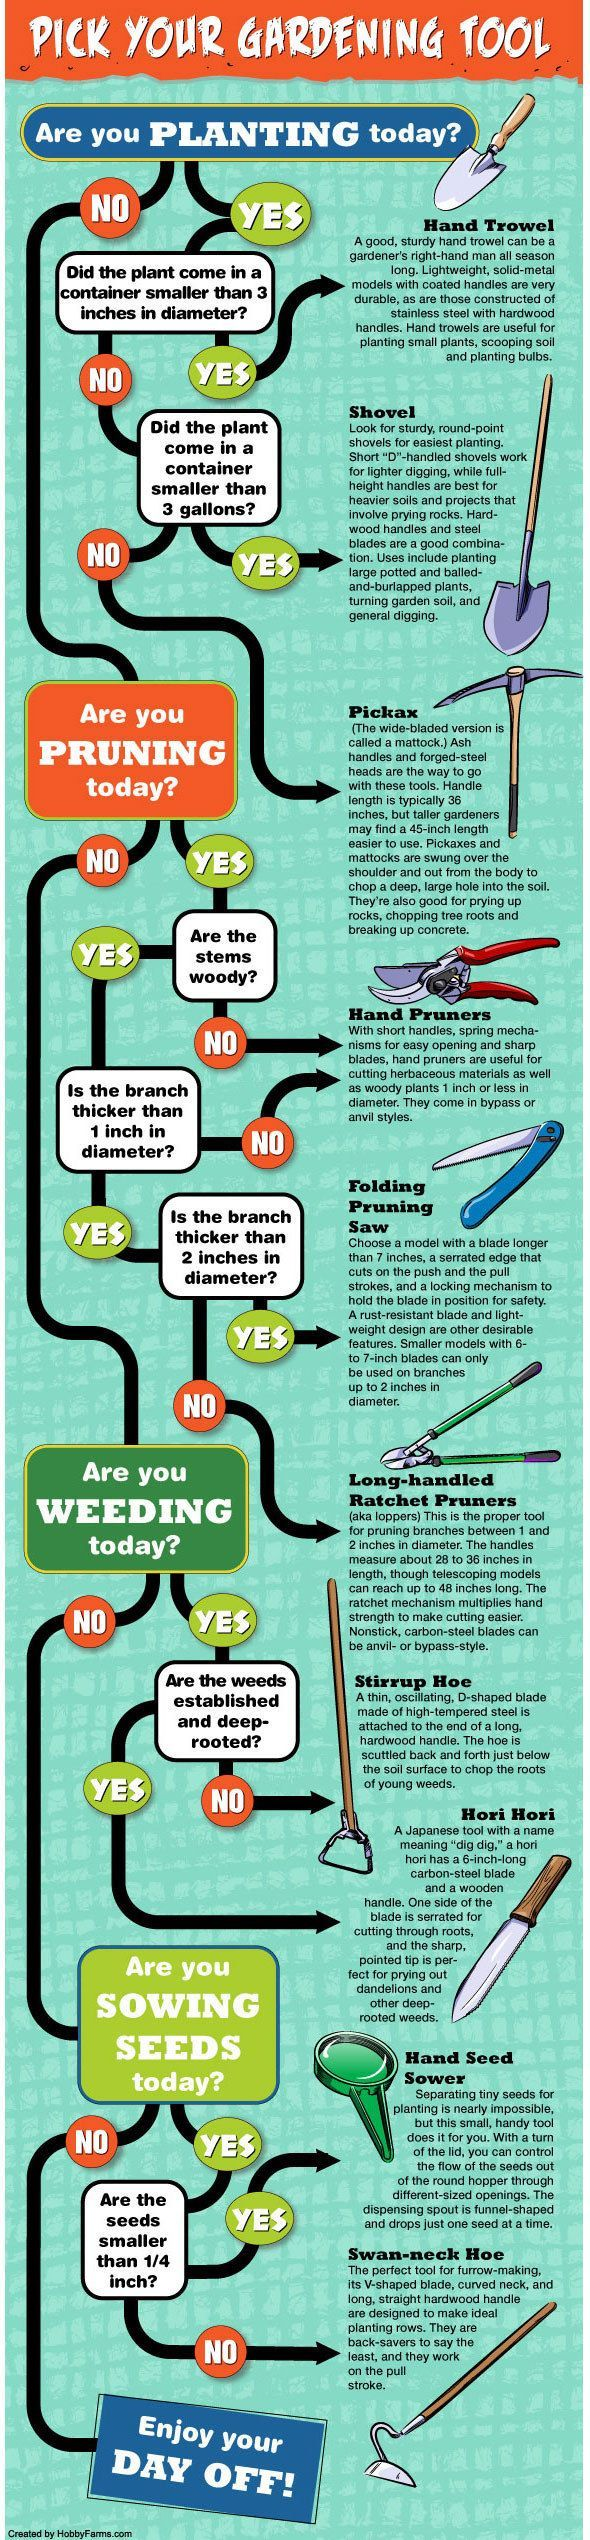 Do you need your hand trowel or your shovel? Follow this flow chart to pick the correct gardening tool.